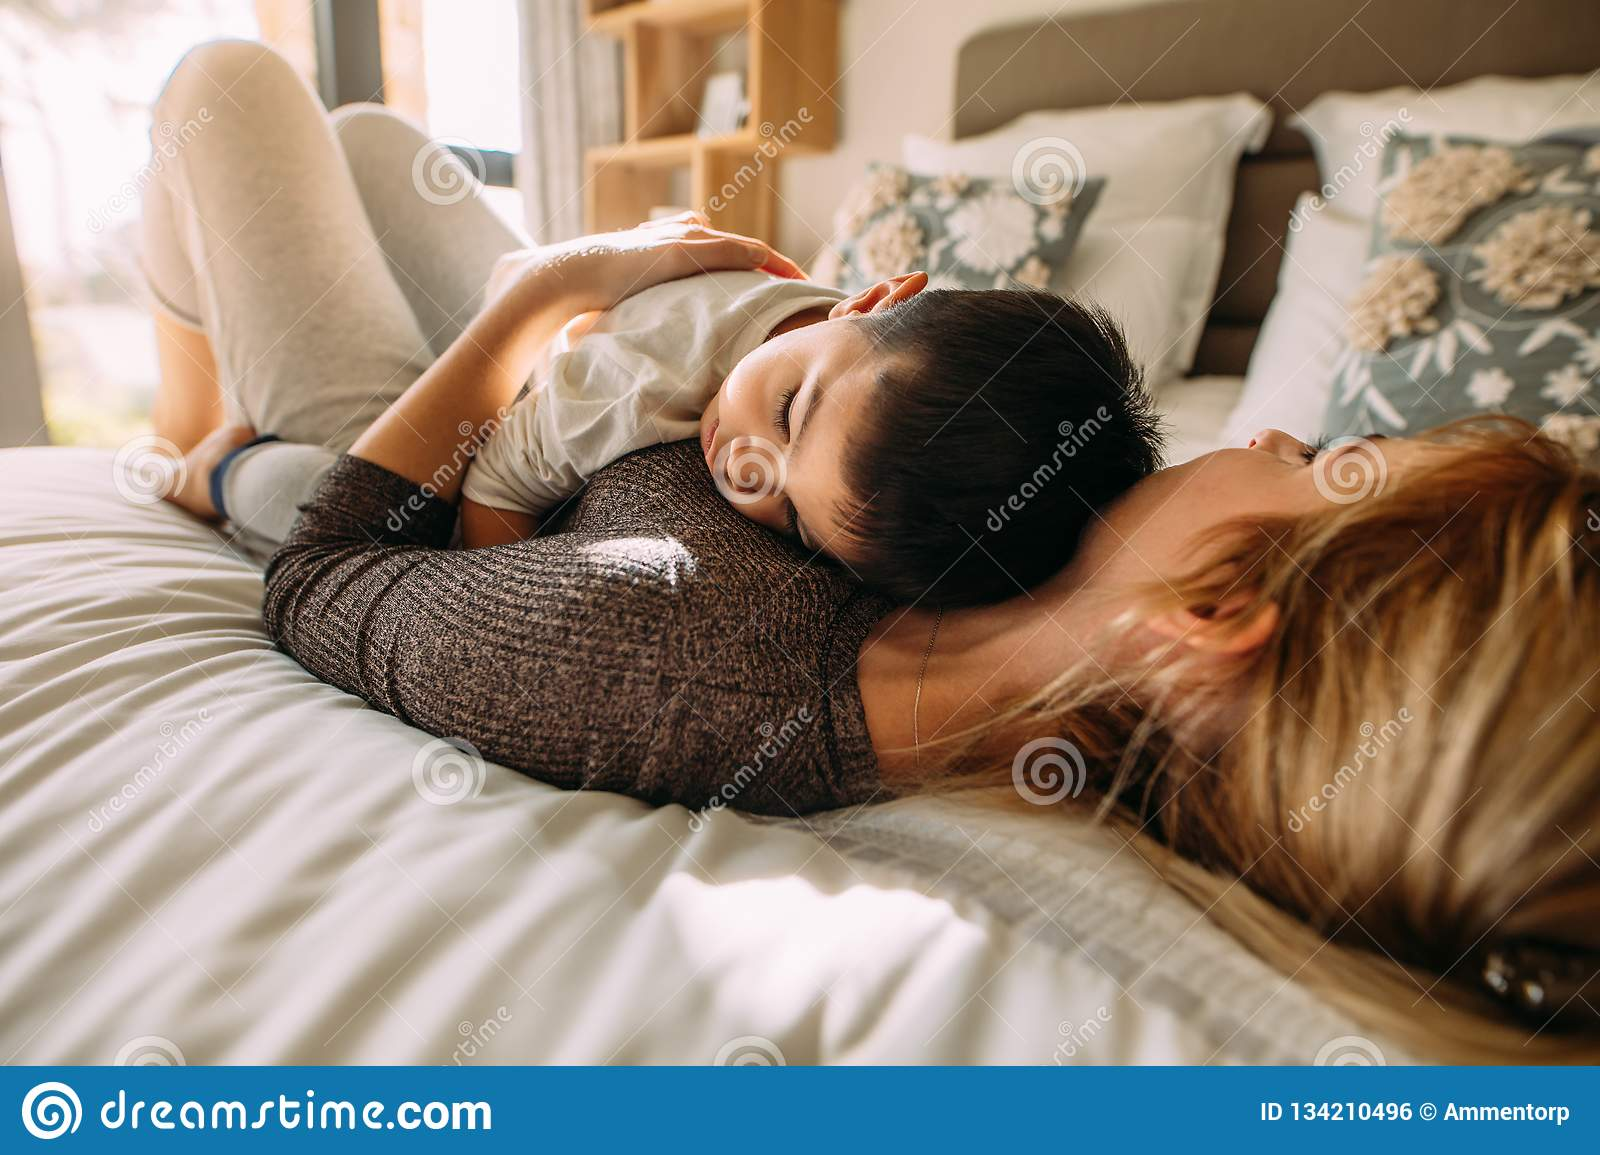 Mother And Son Sleeping Together In Bed Stock Photo